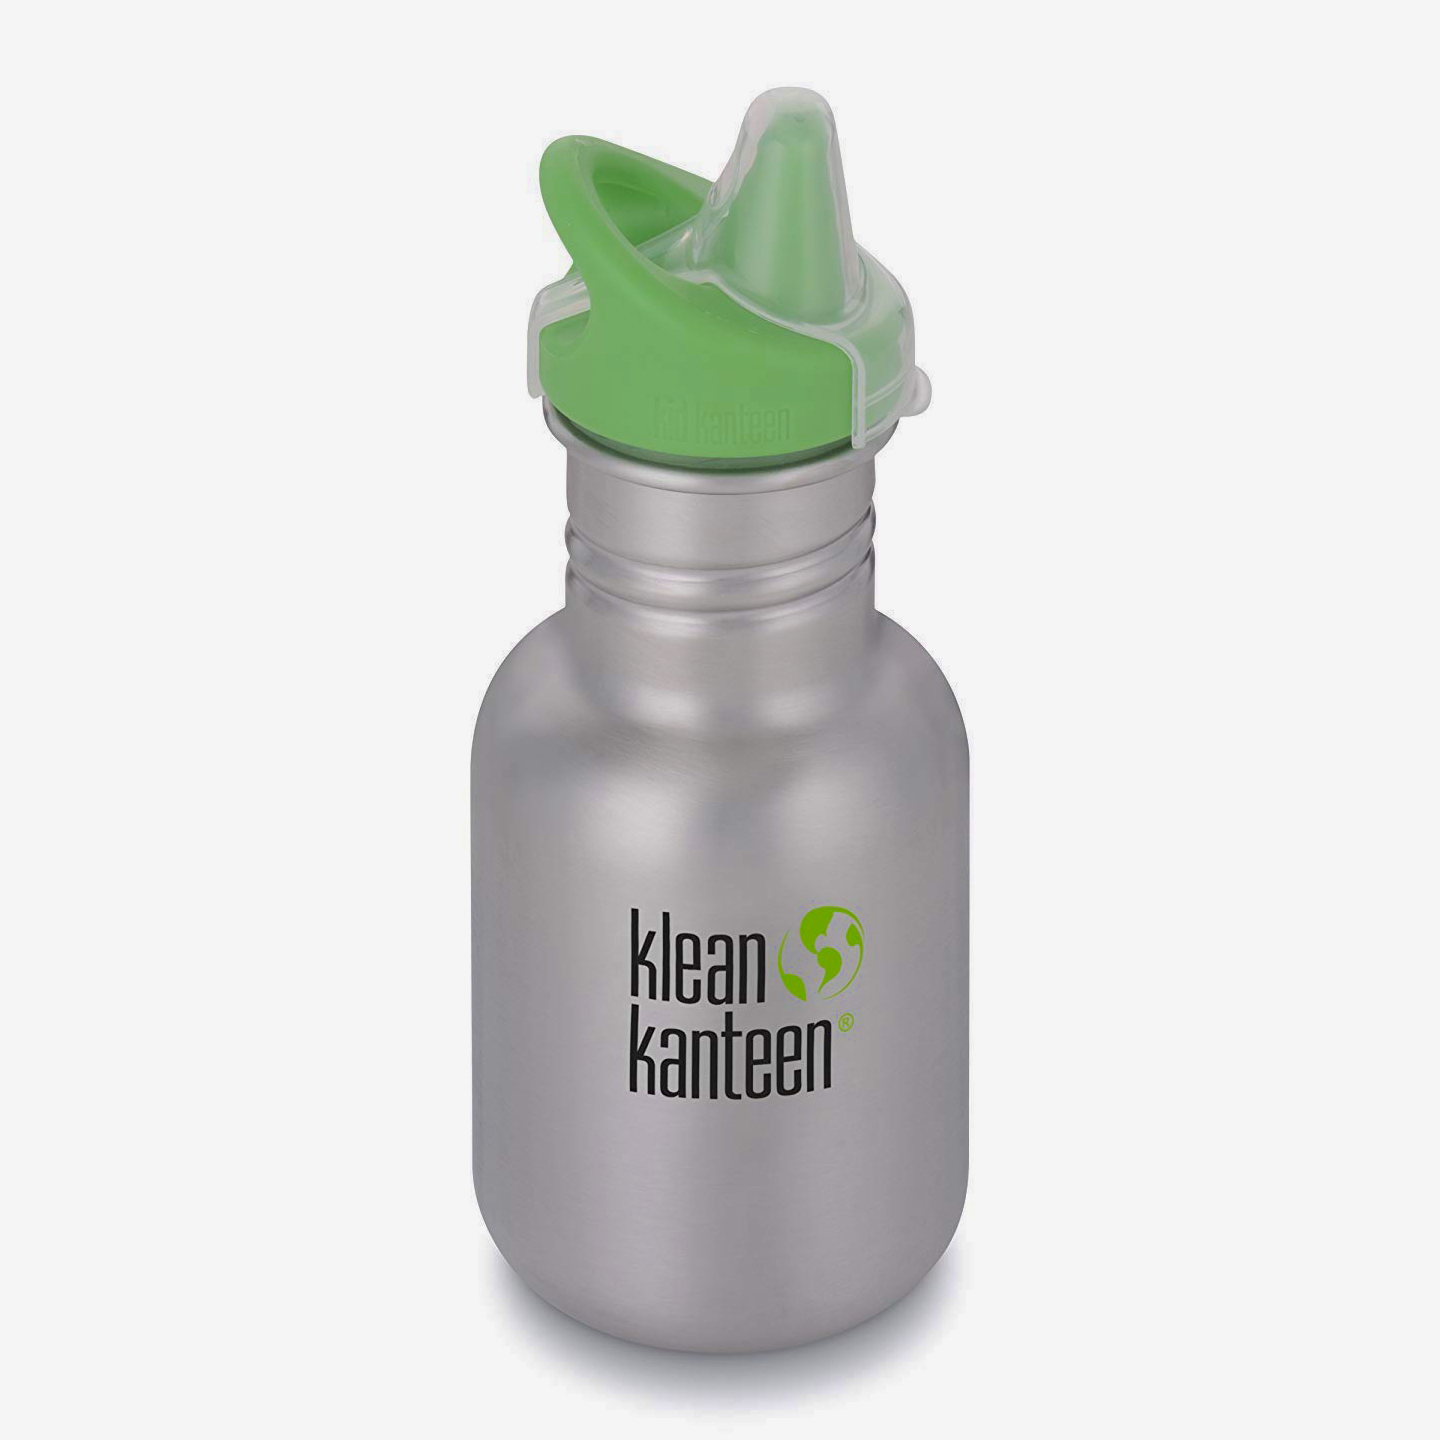 Sustainable Kitchen Essentials For Kids - Klean Kanteen Sippy Cup